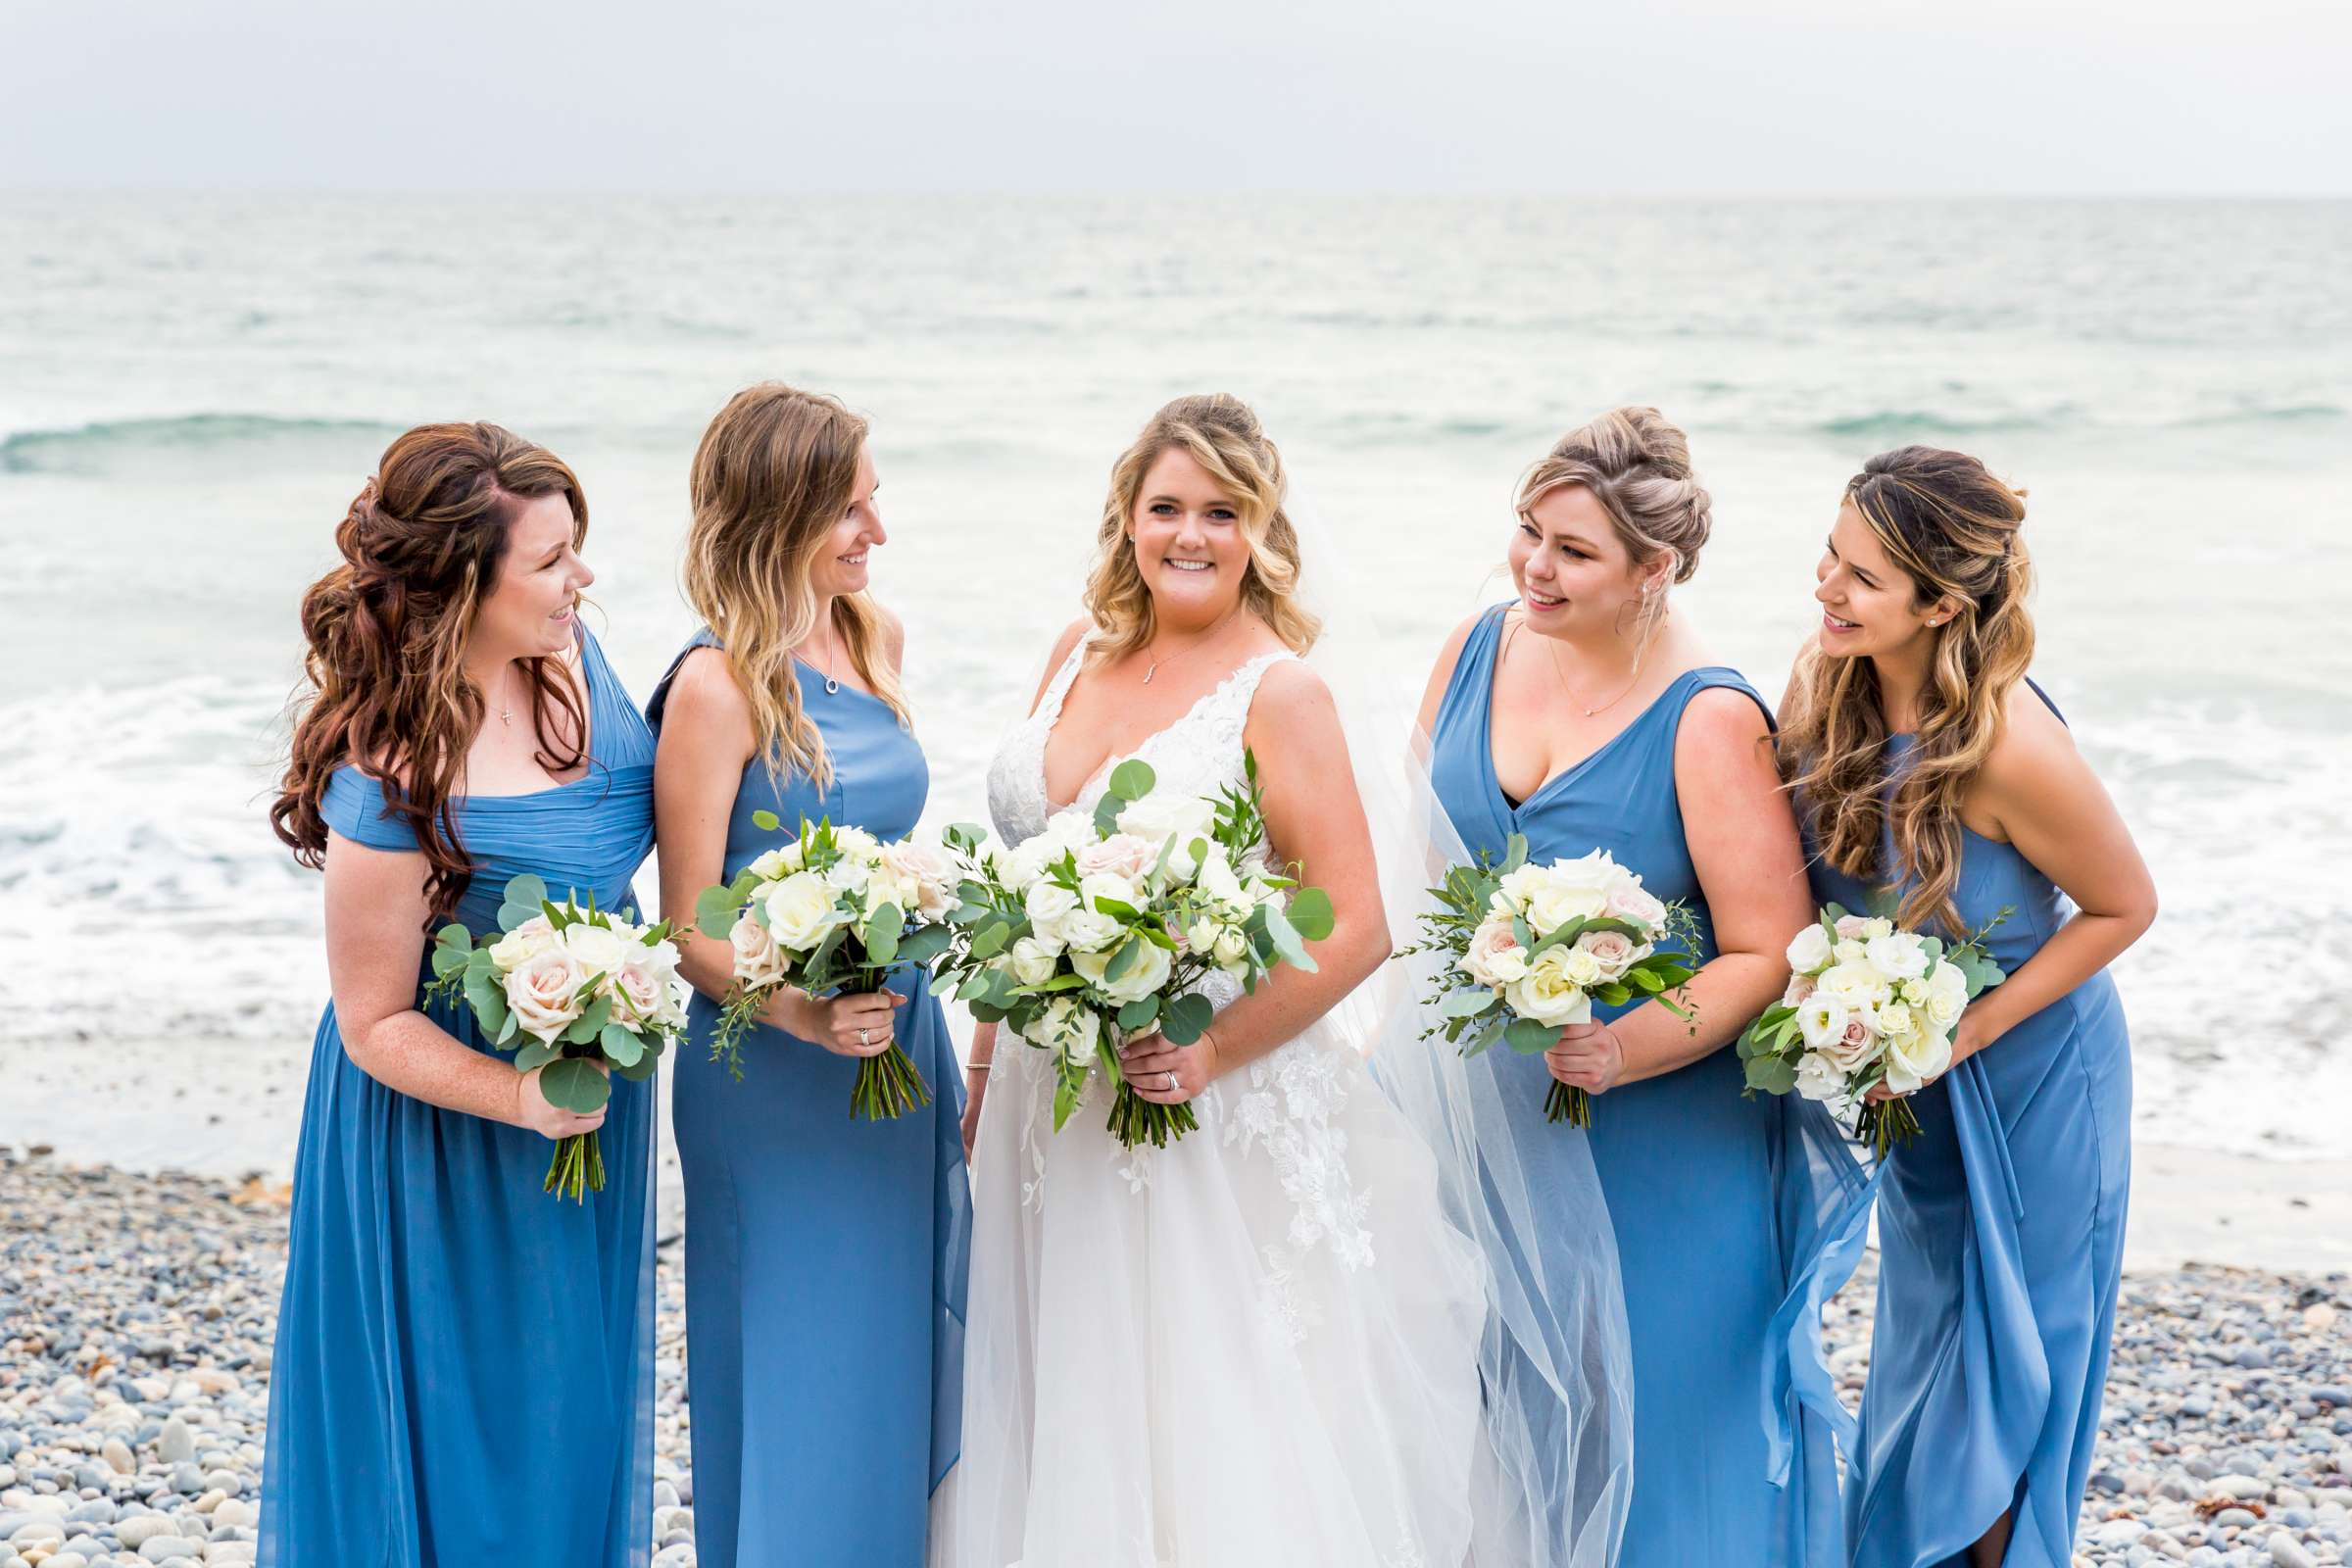 Cape Rey Carlsbad, A Hilton Resort Wedding, Michelle and Justin Wedding Photo #16 by True Photography